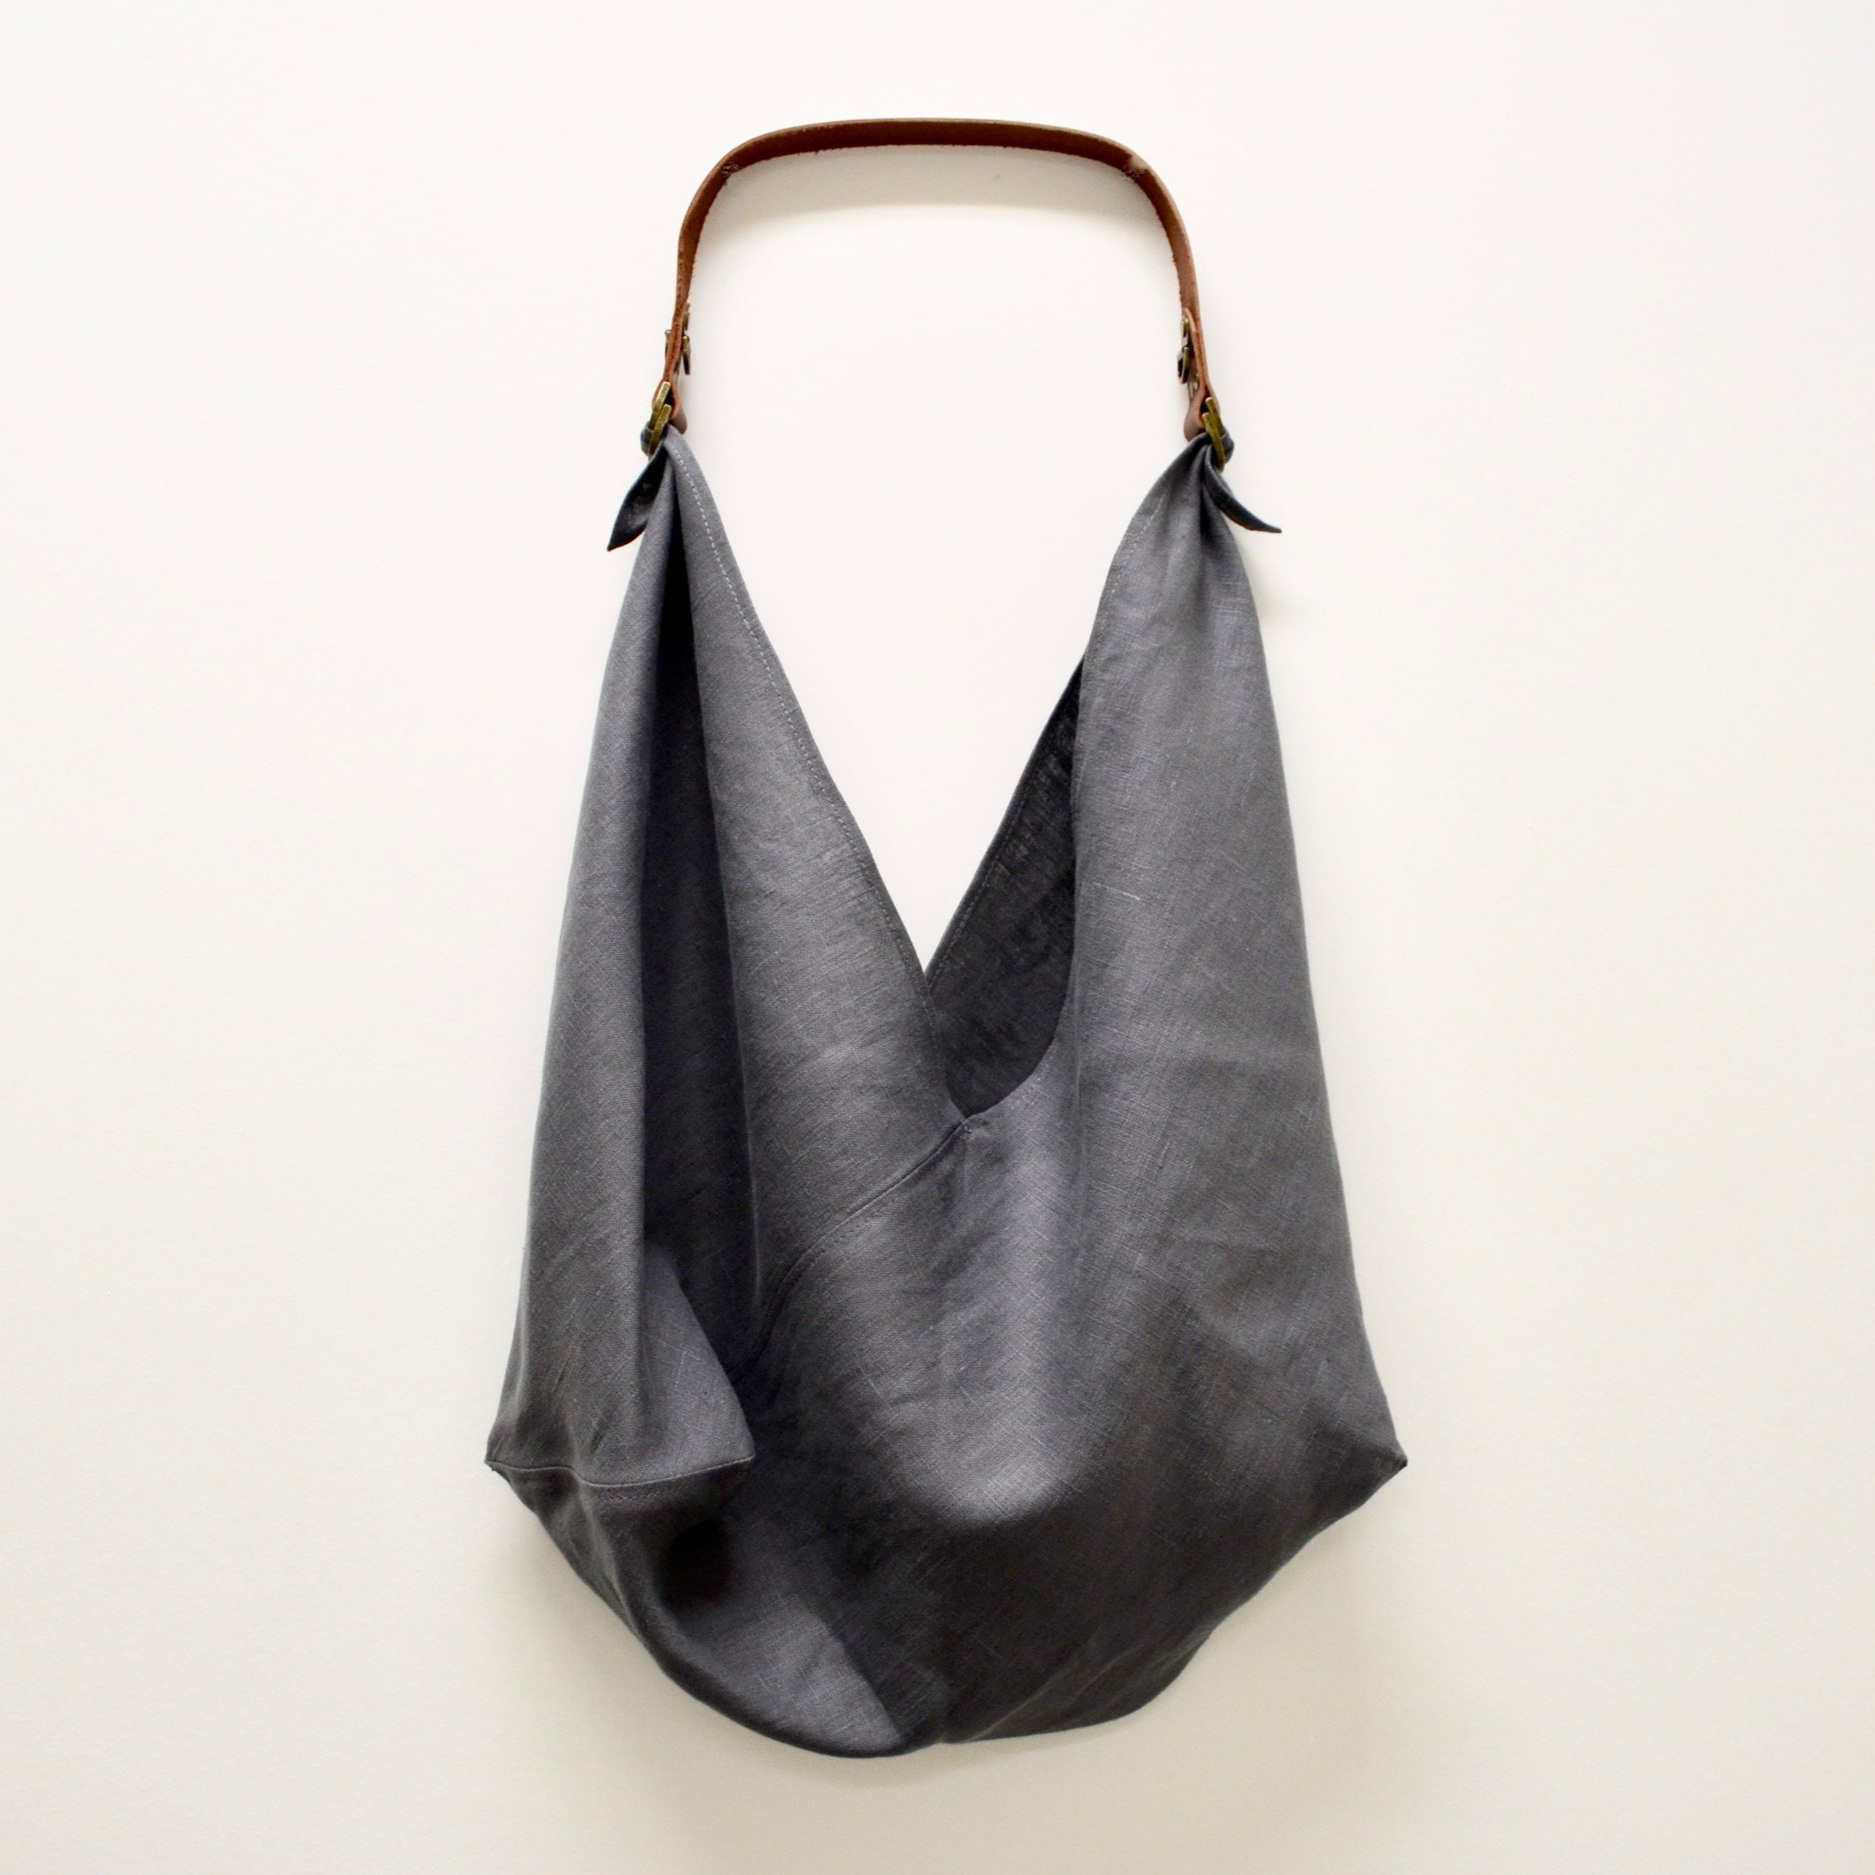 - MEDIUM LINEN BAG IN CHARCOAL W/ ORIGINAL HANDLE IN BROWN